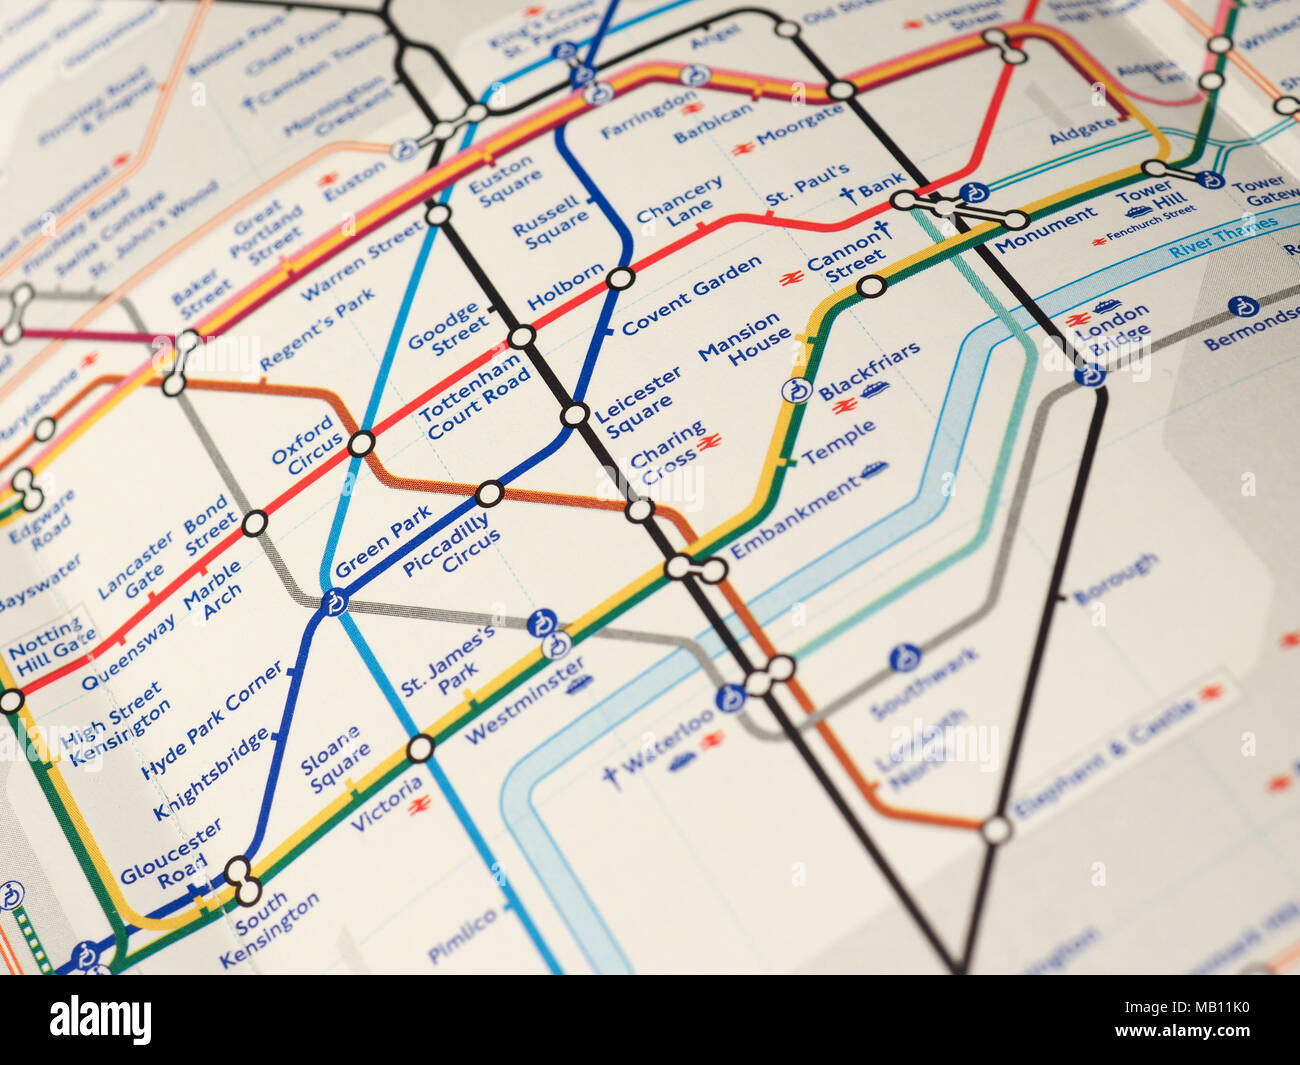 Street Map Of London With Tube Stations.London Uk Circa 2018 Map Of London Underground Tube Stations